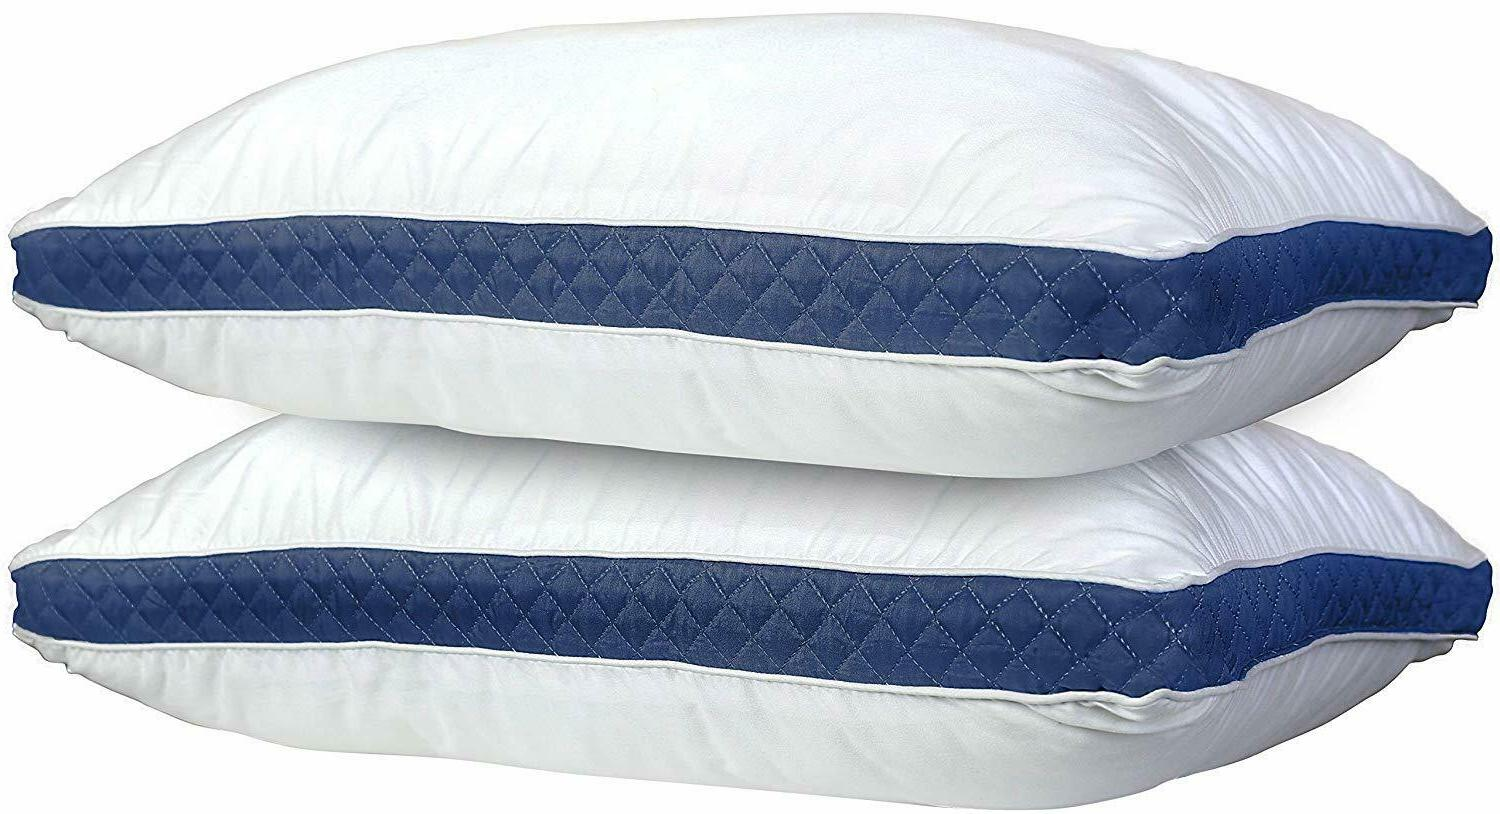 hypoallergenic pillow quilted 2 pack queen king